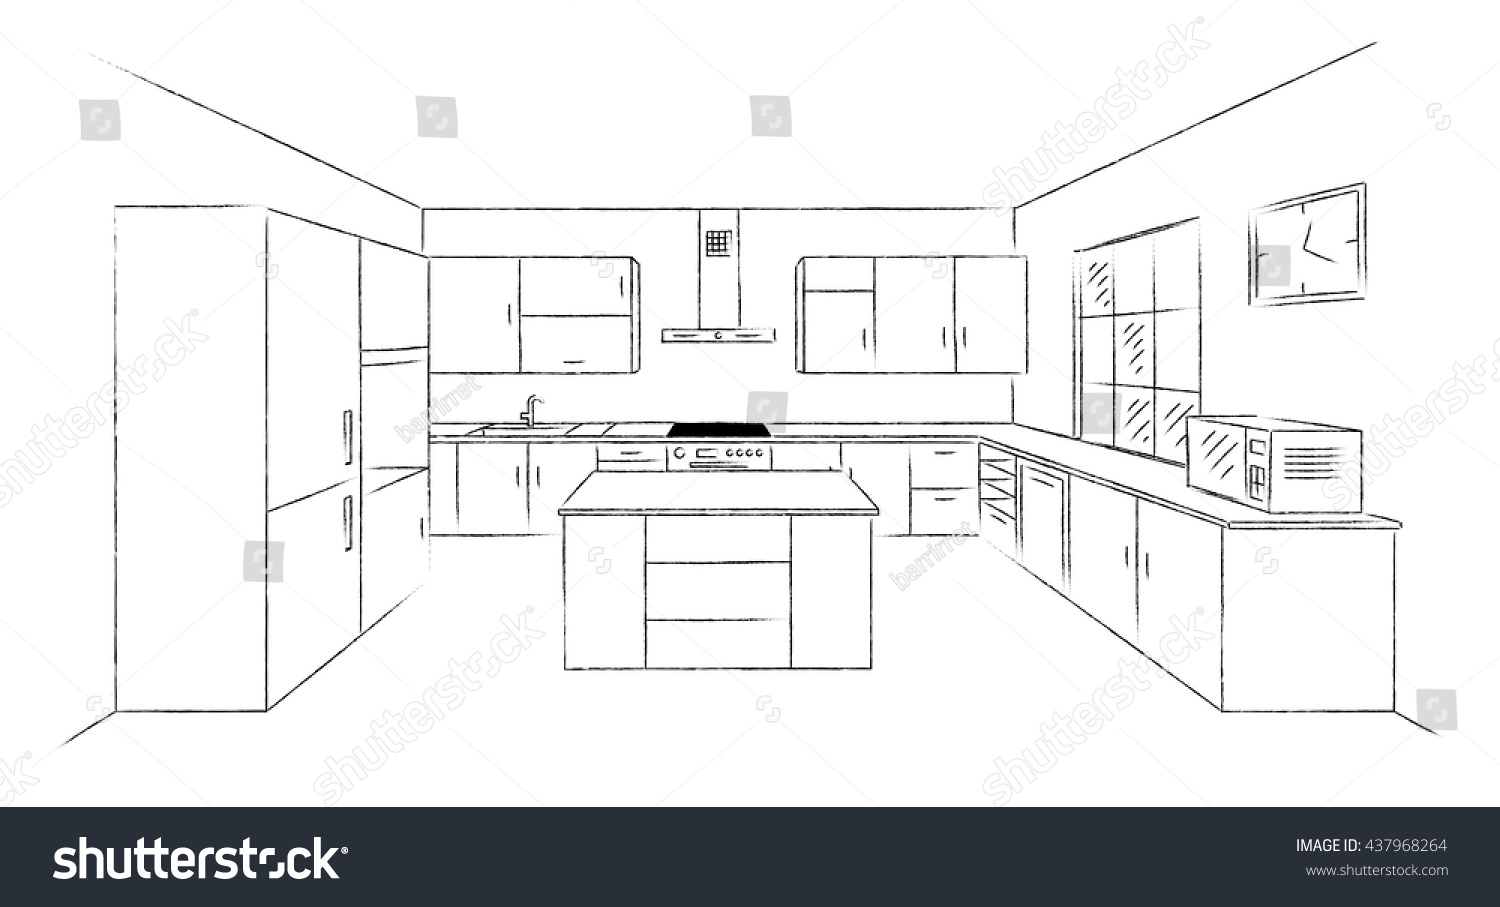 Sketch Hand Drawing Kitchen Interior Plan Stock Vector